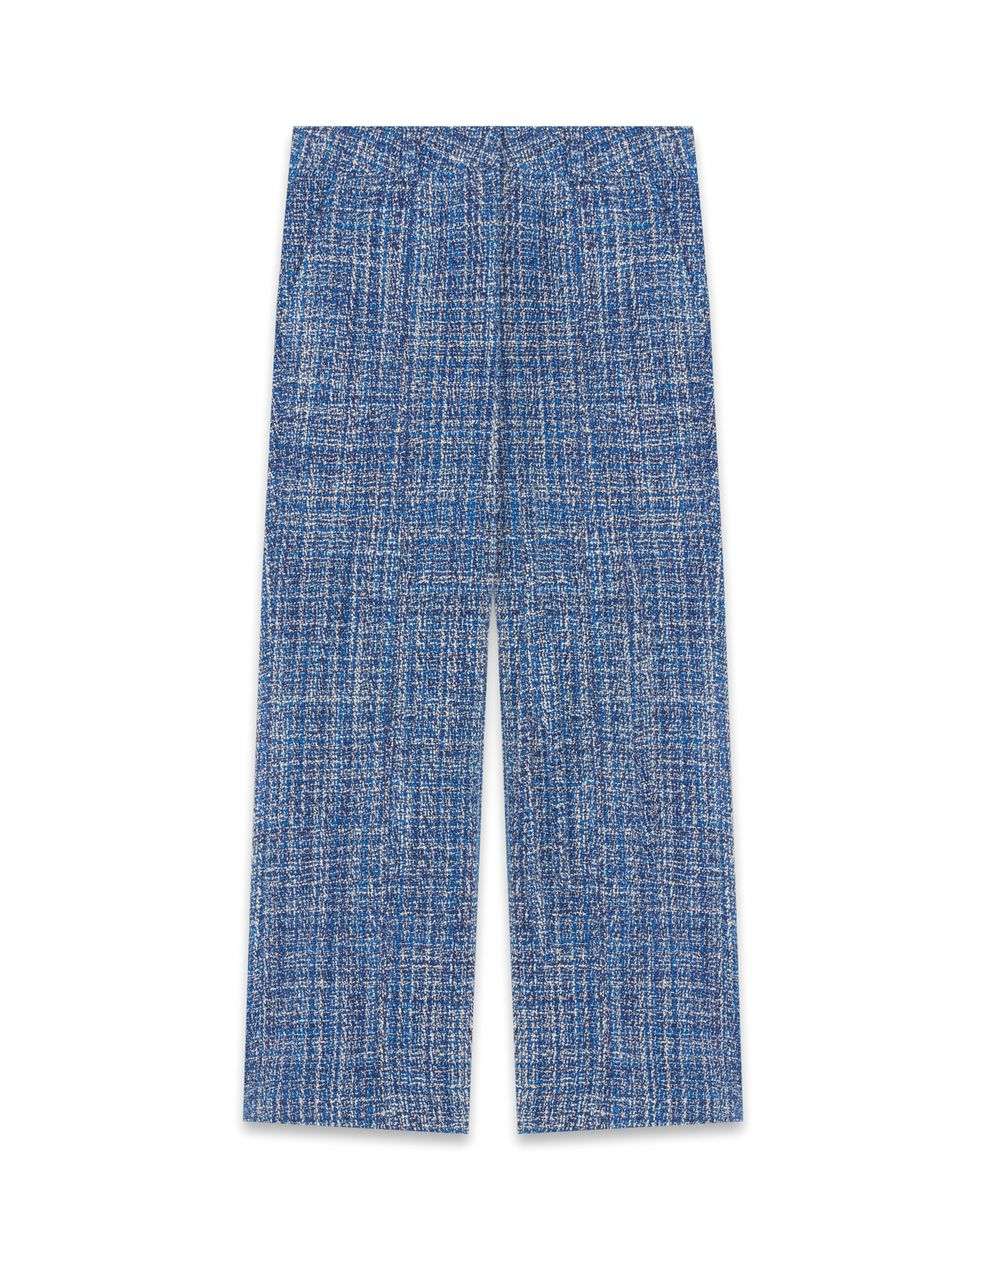 7/8 TWEED PANTS - Lanvin